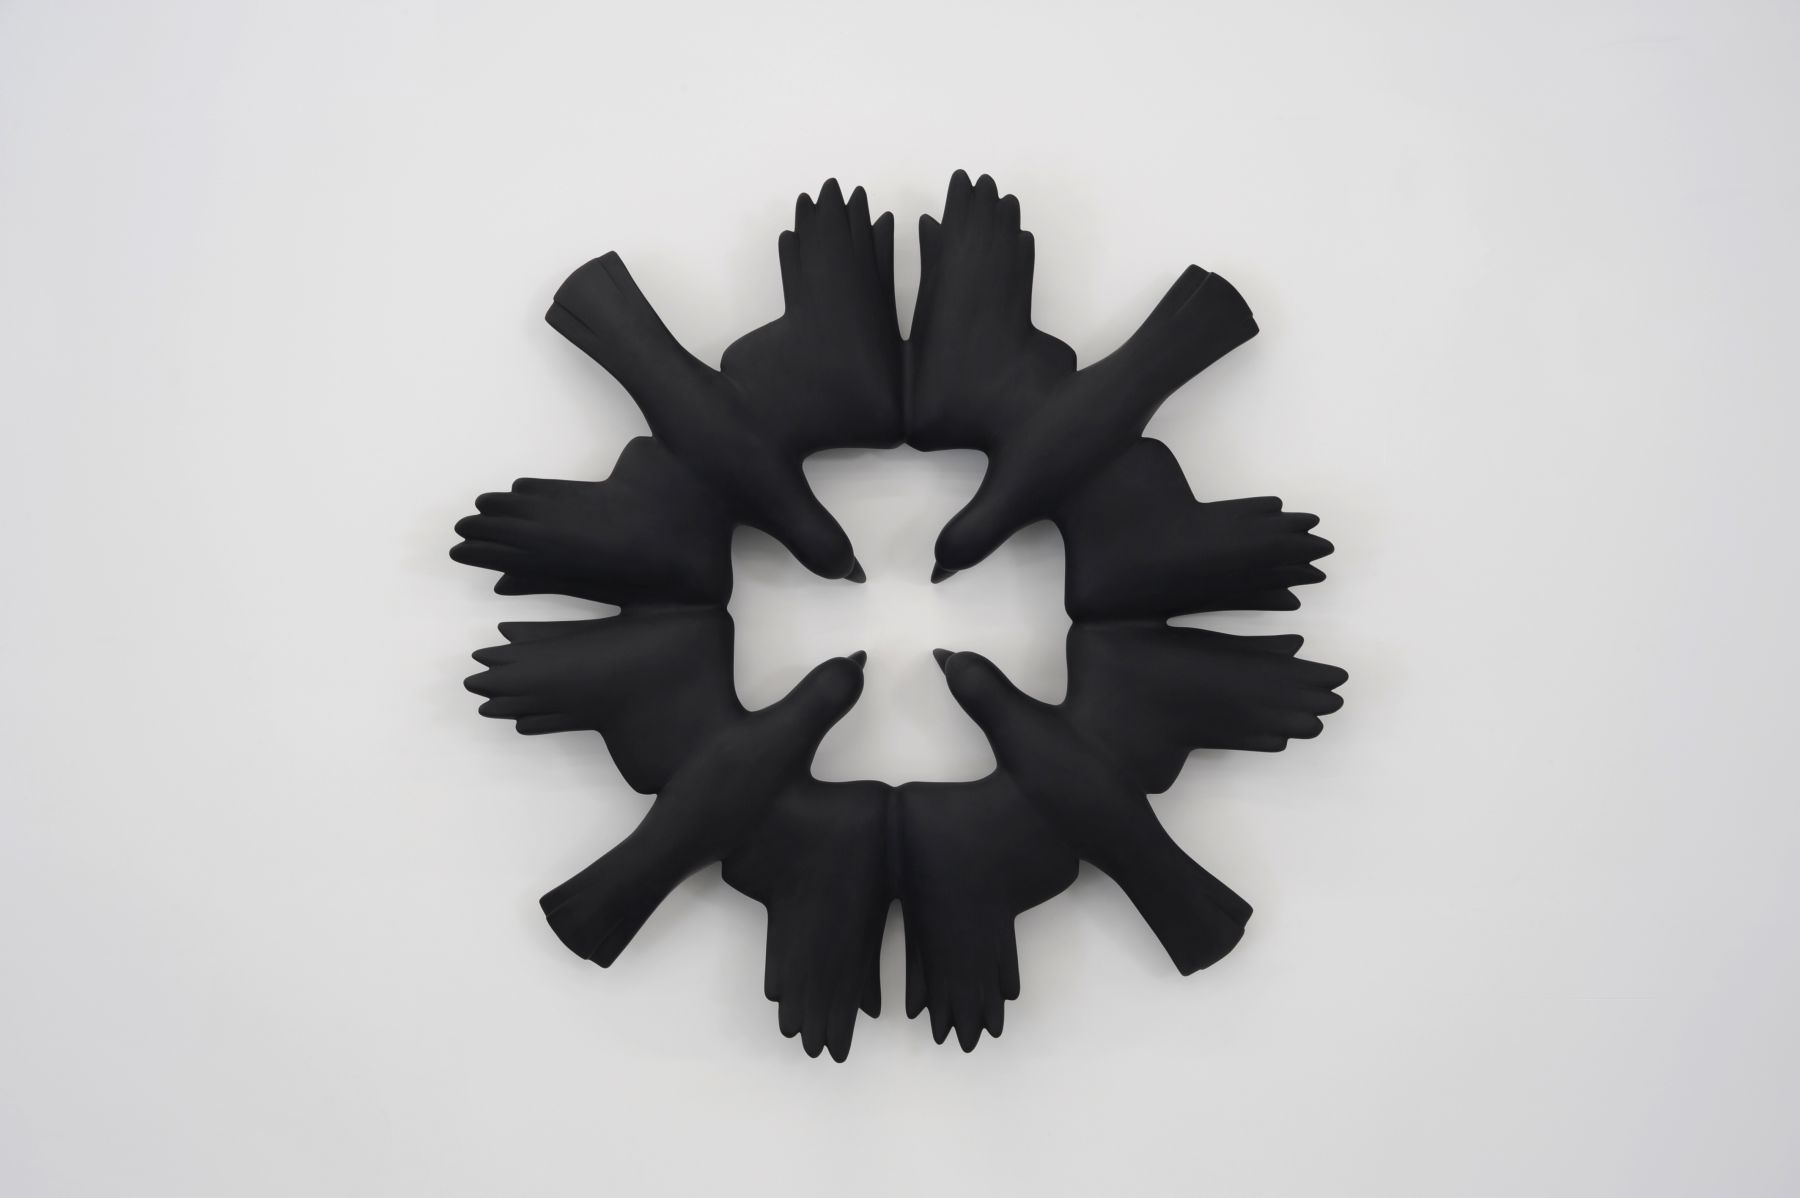 KENNY HUNTER Roche Rooks 2008, jesmonite and paint, 47 x 47 x 6 inches